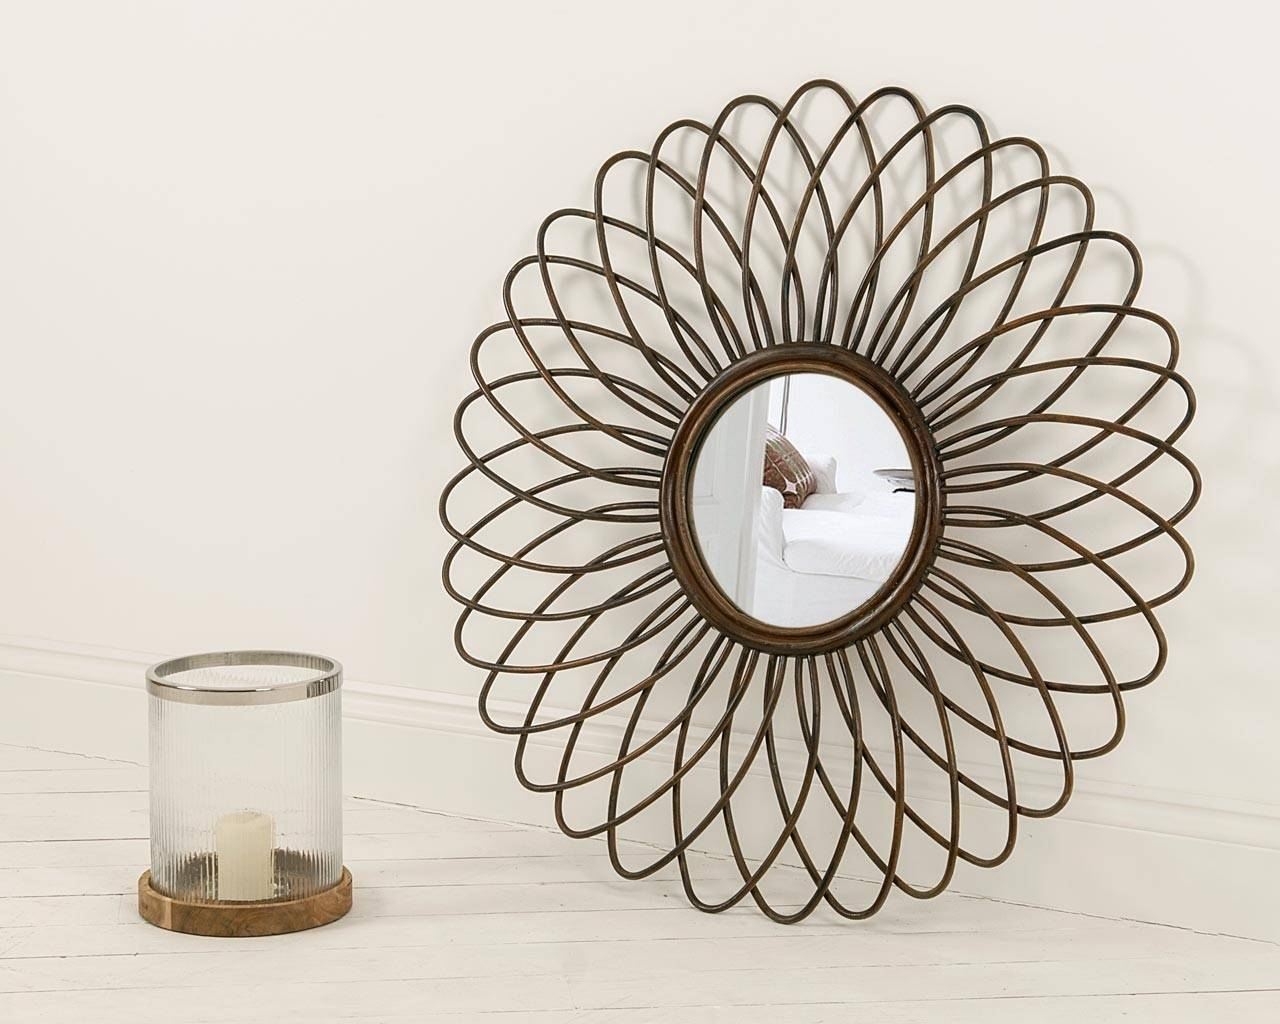 Rattan Ornate Round Mirror - Handcrafted Feature Mirrors inside Ornate Round Mirrors (Image 23 of 25)